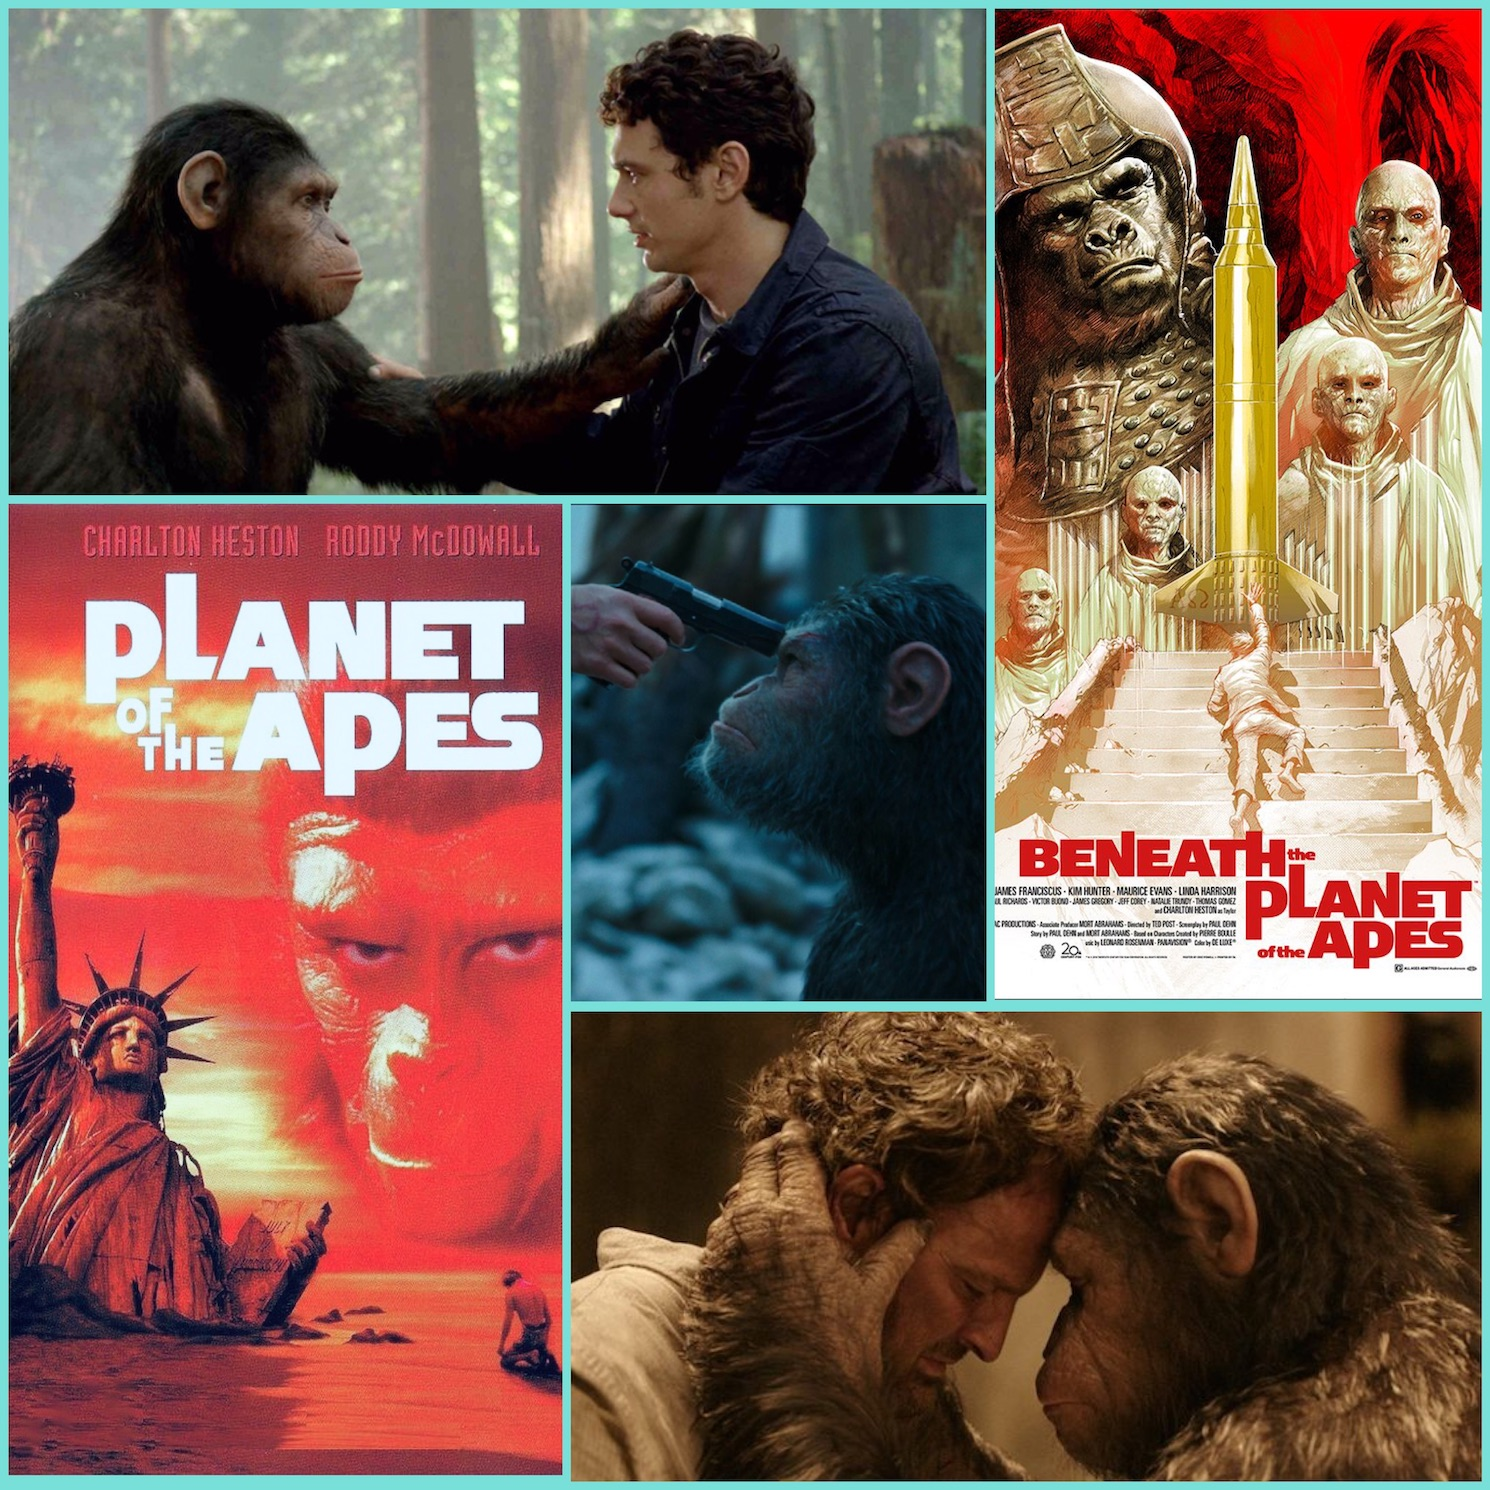 il-pianeta-delle-scimmie-planet-of.-the-apes-considerazioni-riflessioni-franchise-guerra-insta-thoughts-cinema-film